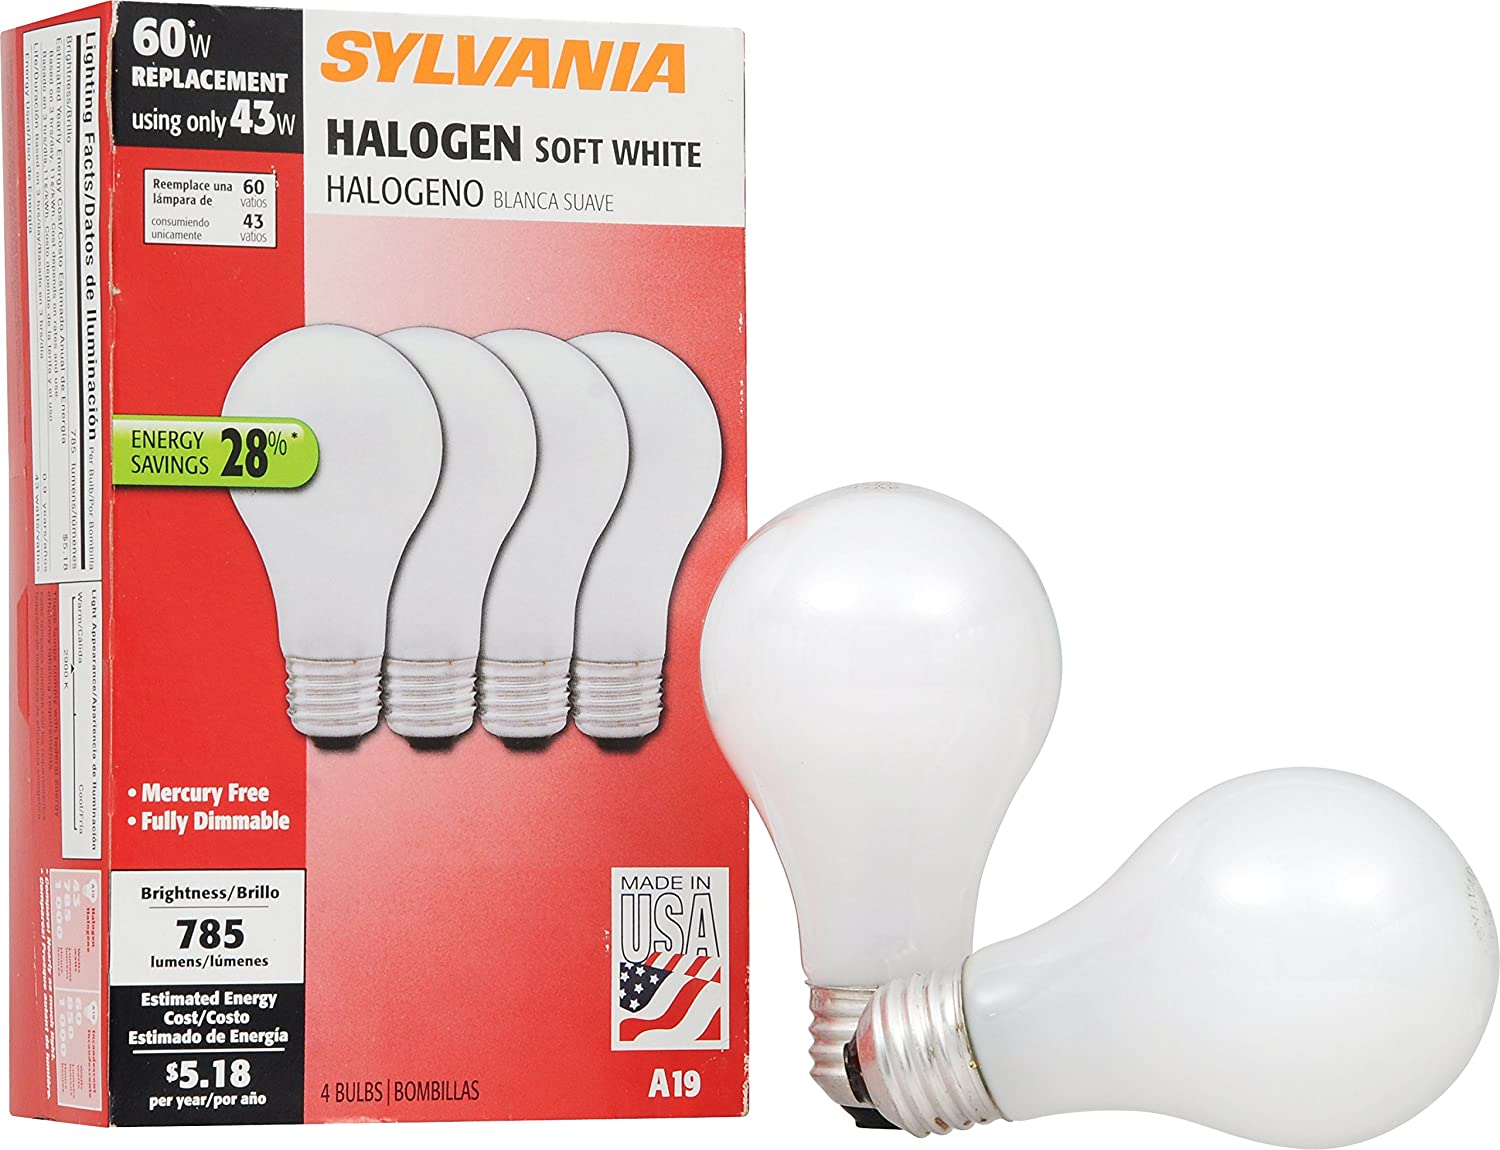 Sylvania Home Lighting 52204 43W 2900K A19 Halogen Bulb with Medium Base and Soft White Finish (4 Pack), 4 Piece - - Amazon.com